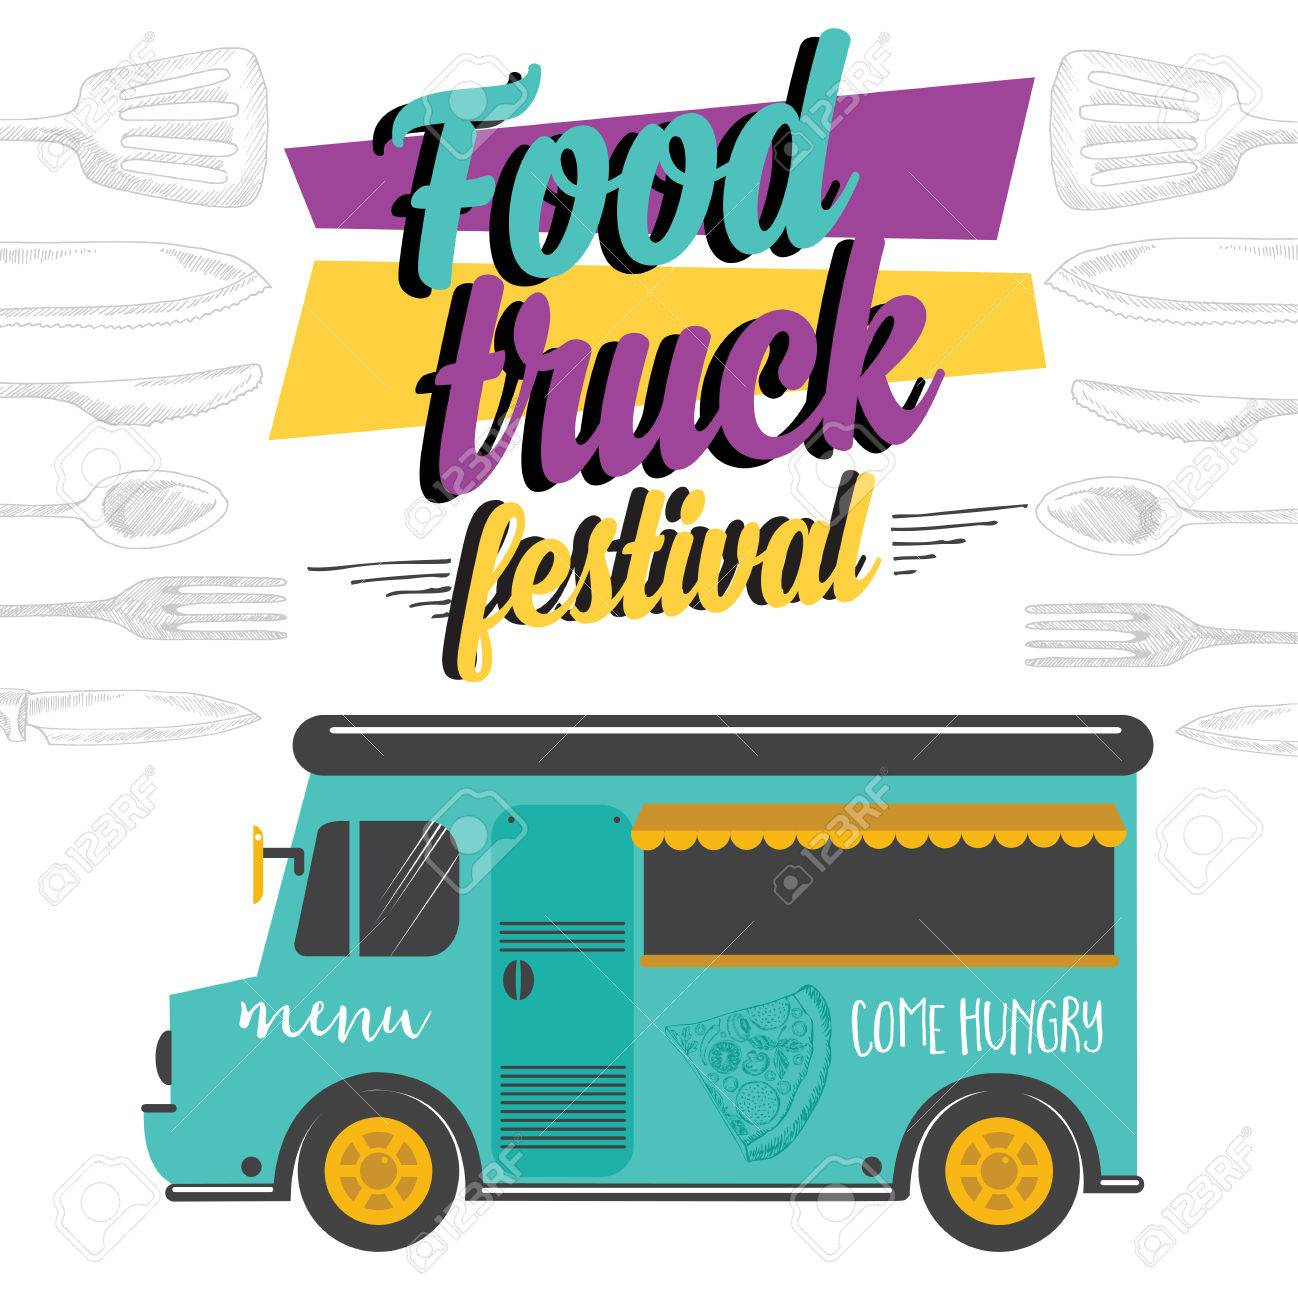 Food Truck Festival Menu Brochure Street Template Design Vintage Creative Party Invitation With